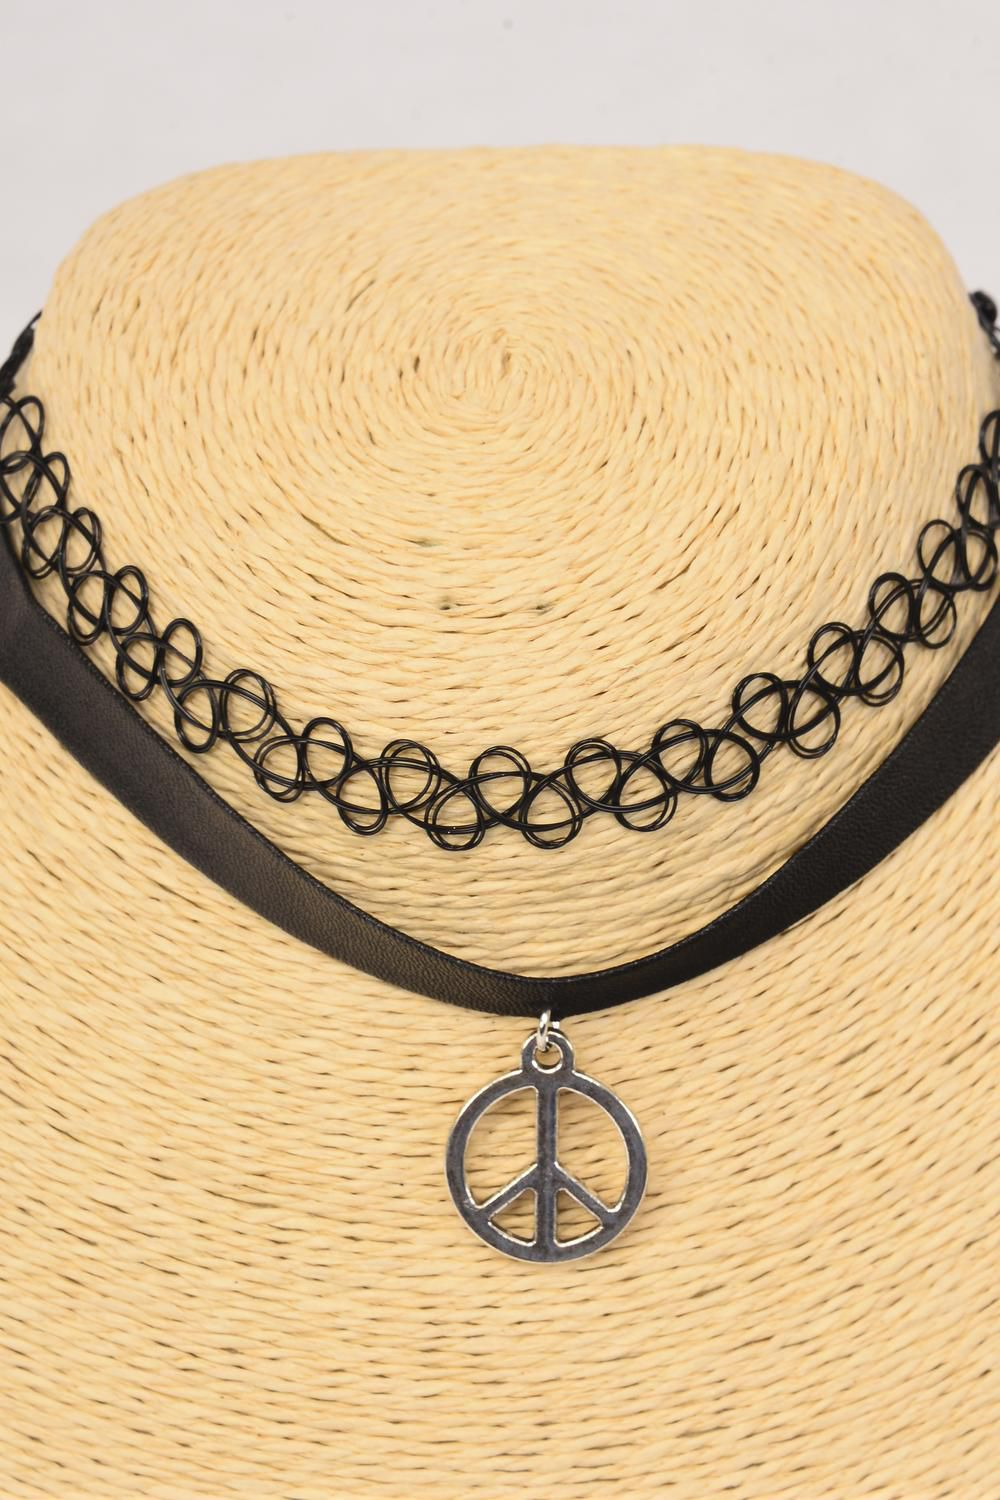 Necklace Choker 24 Pcs Leather Feel Peace Sign & Gothic